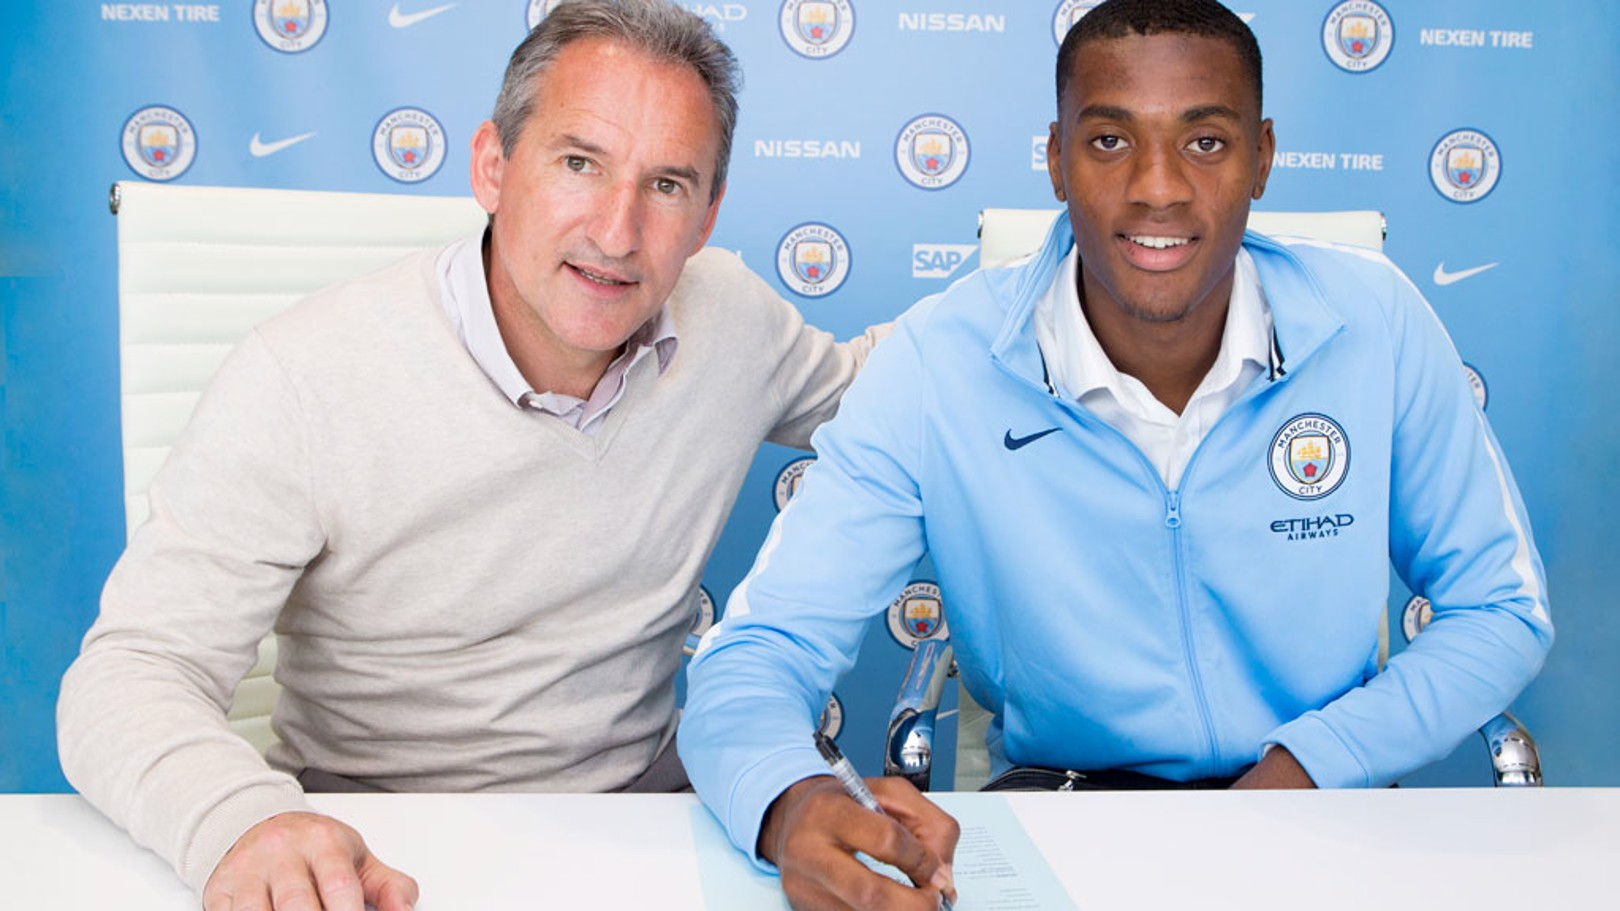 DONE DEAL: Tosin Adarabioyo has signed a new contract with City